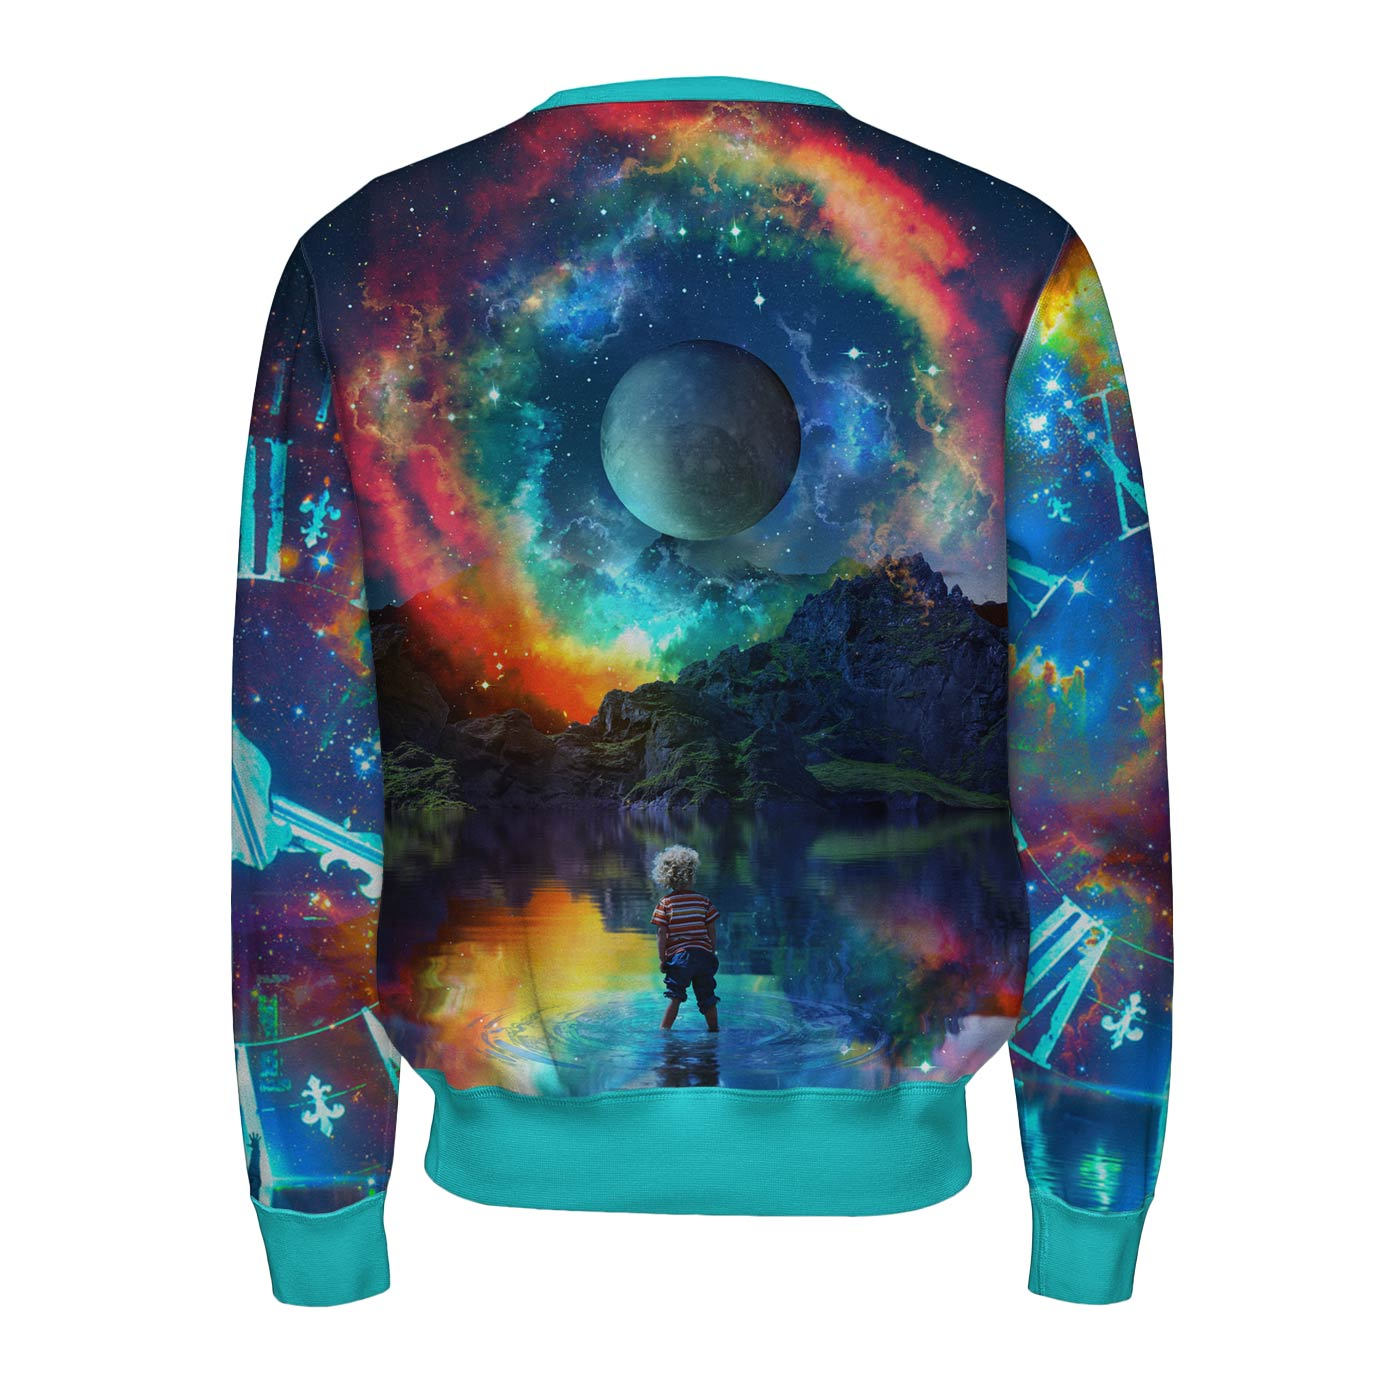 The Max Sweatshirt